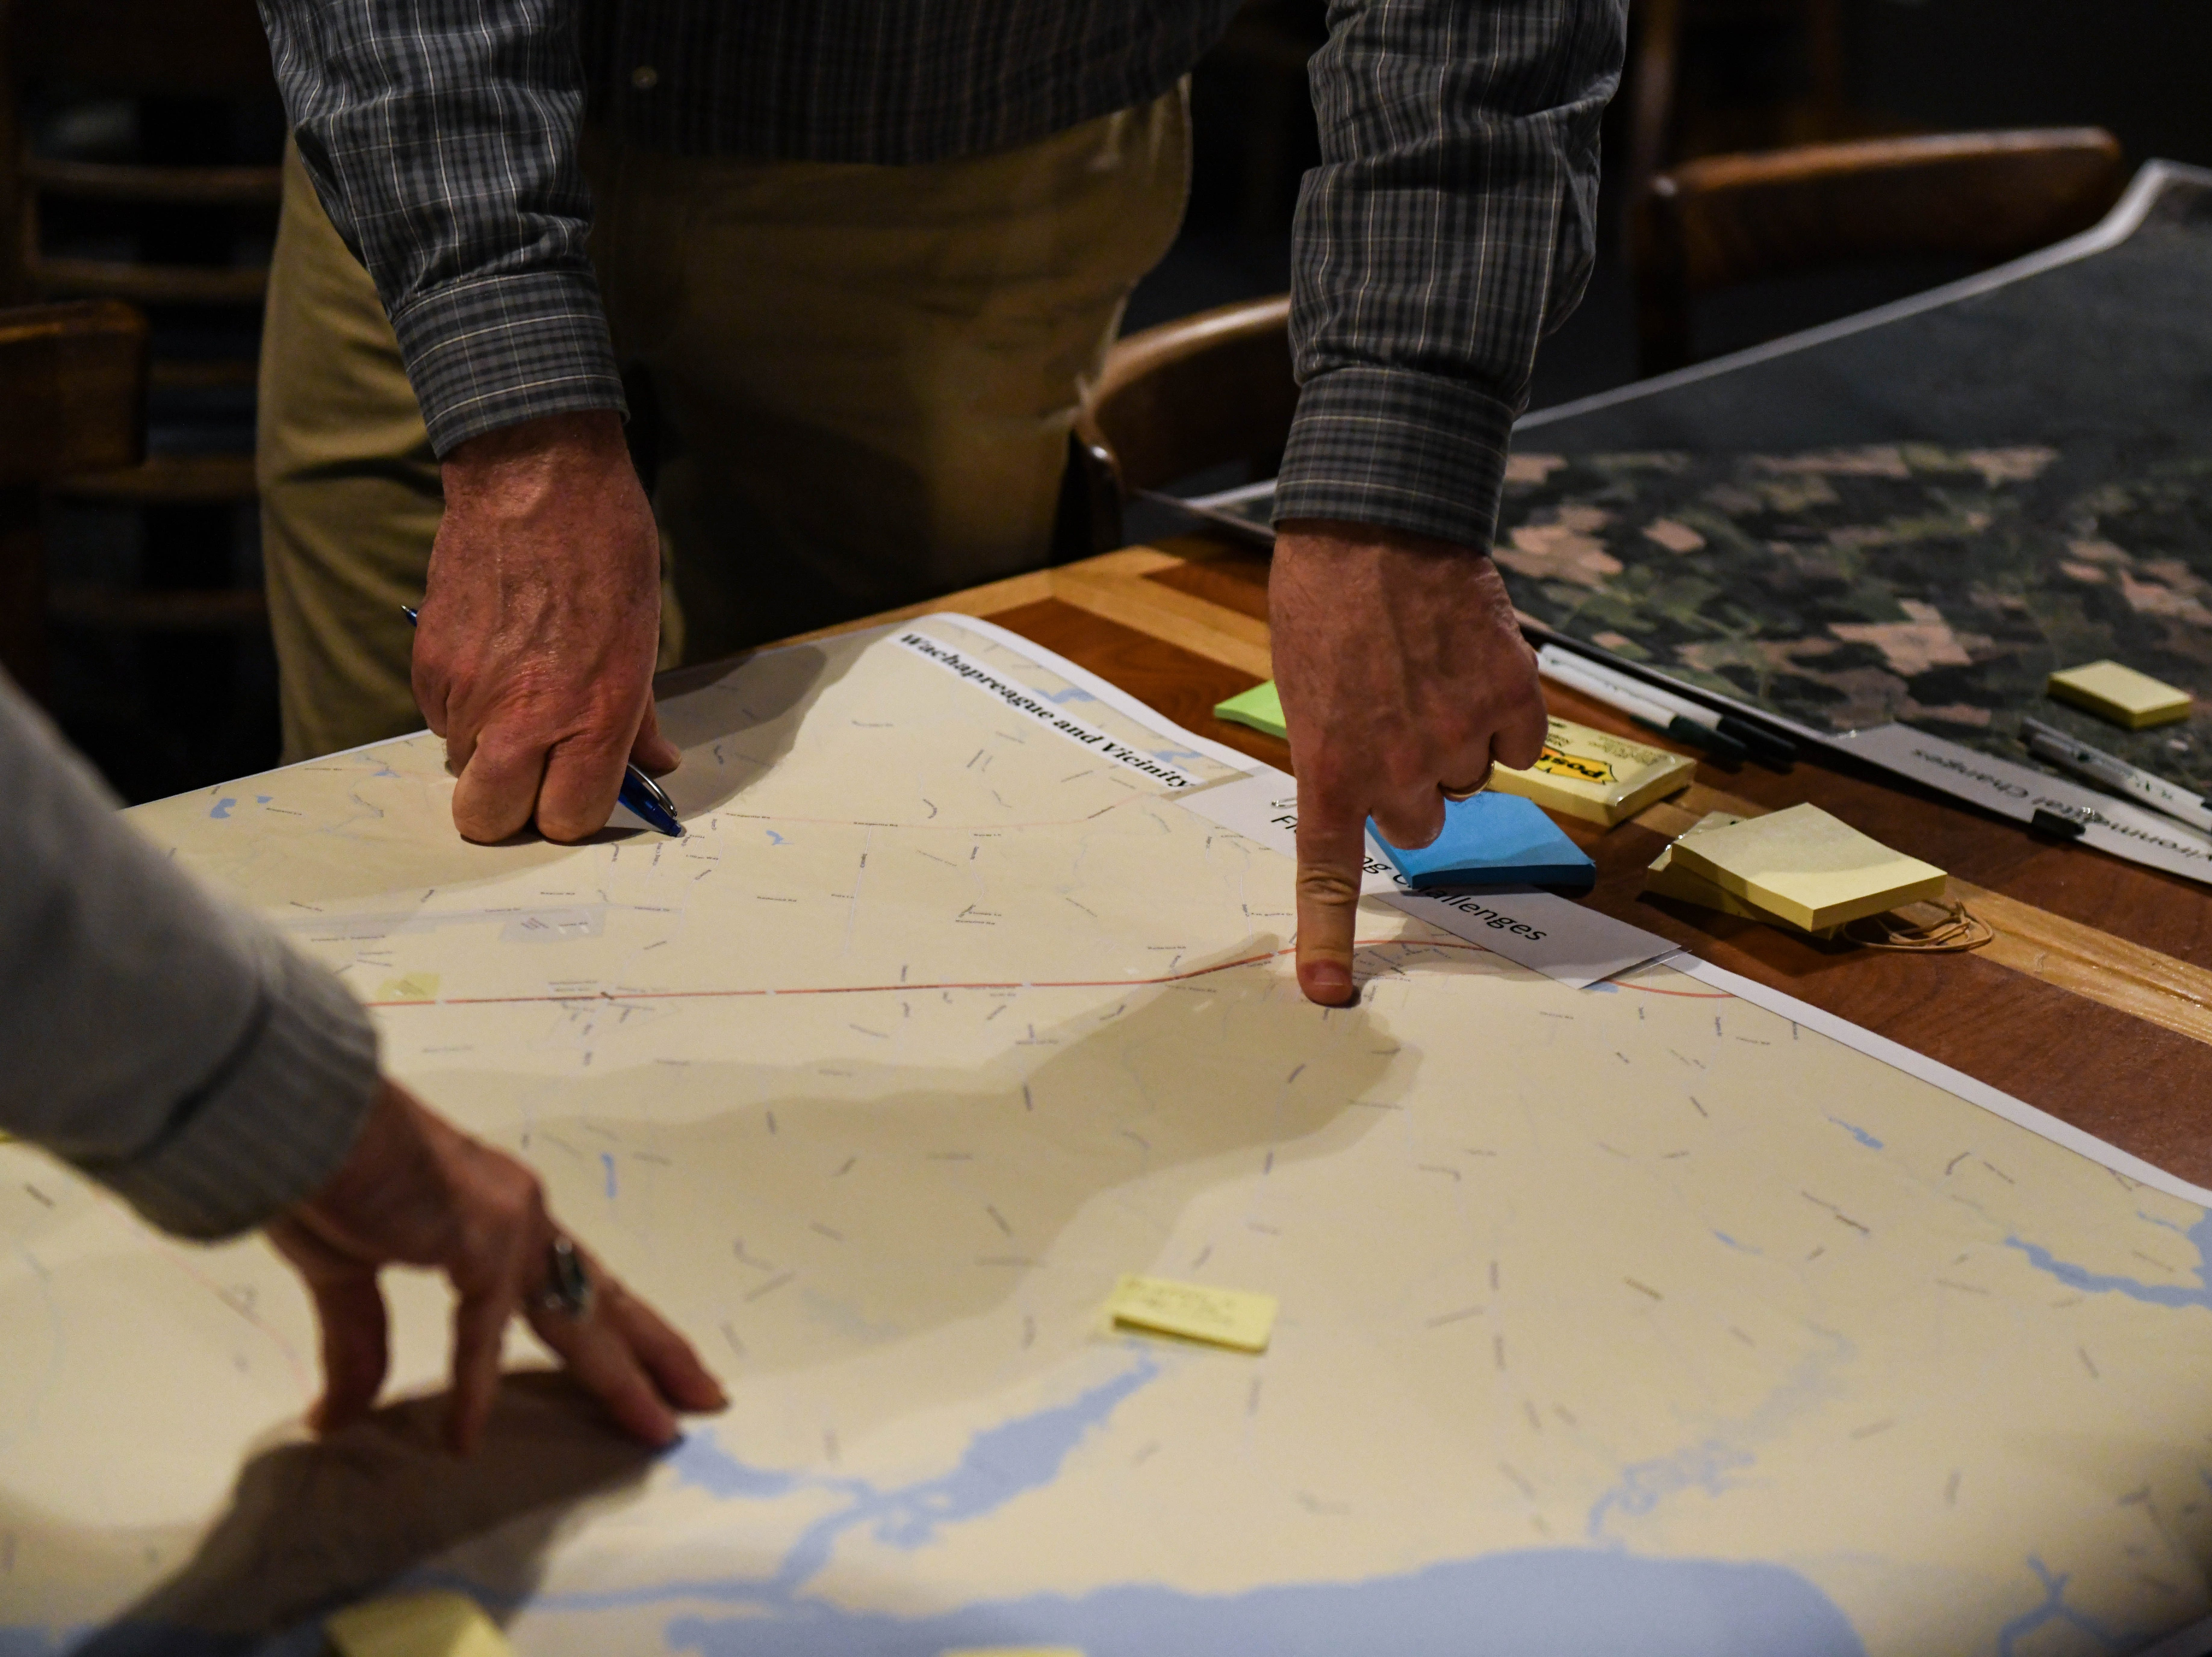 Local residents map local flooding at a community meeting in Wachapreague, Virginia led by the Nature Conservancy on Monday, March 4, 2019.